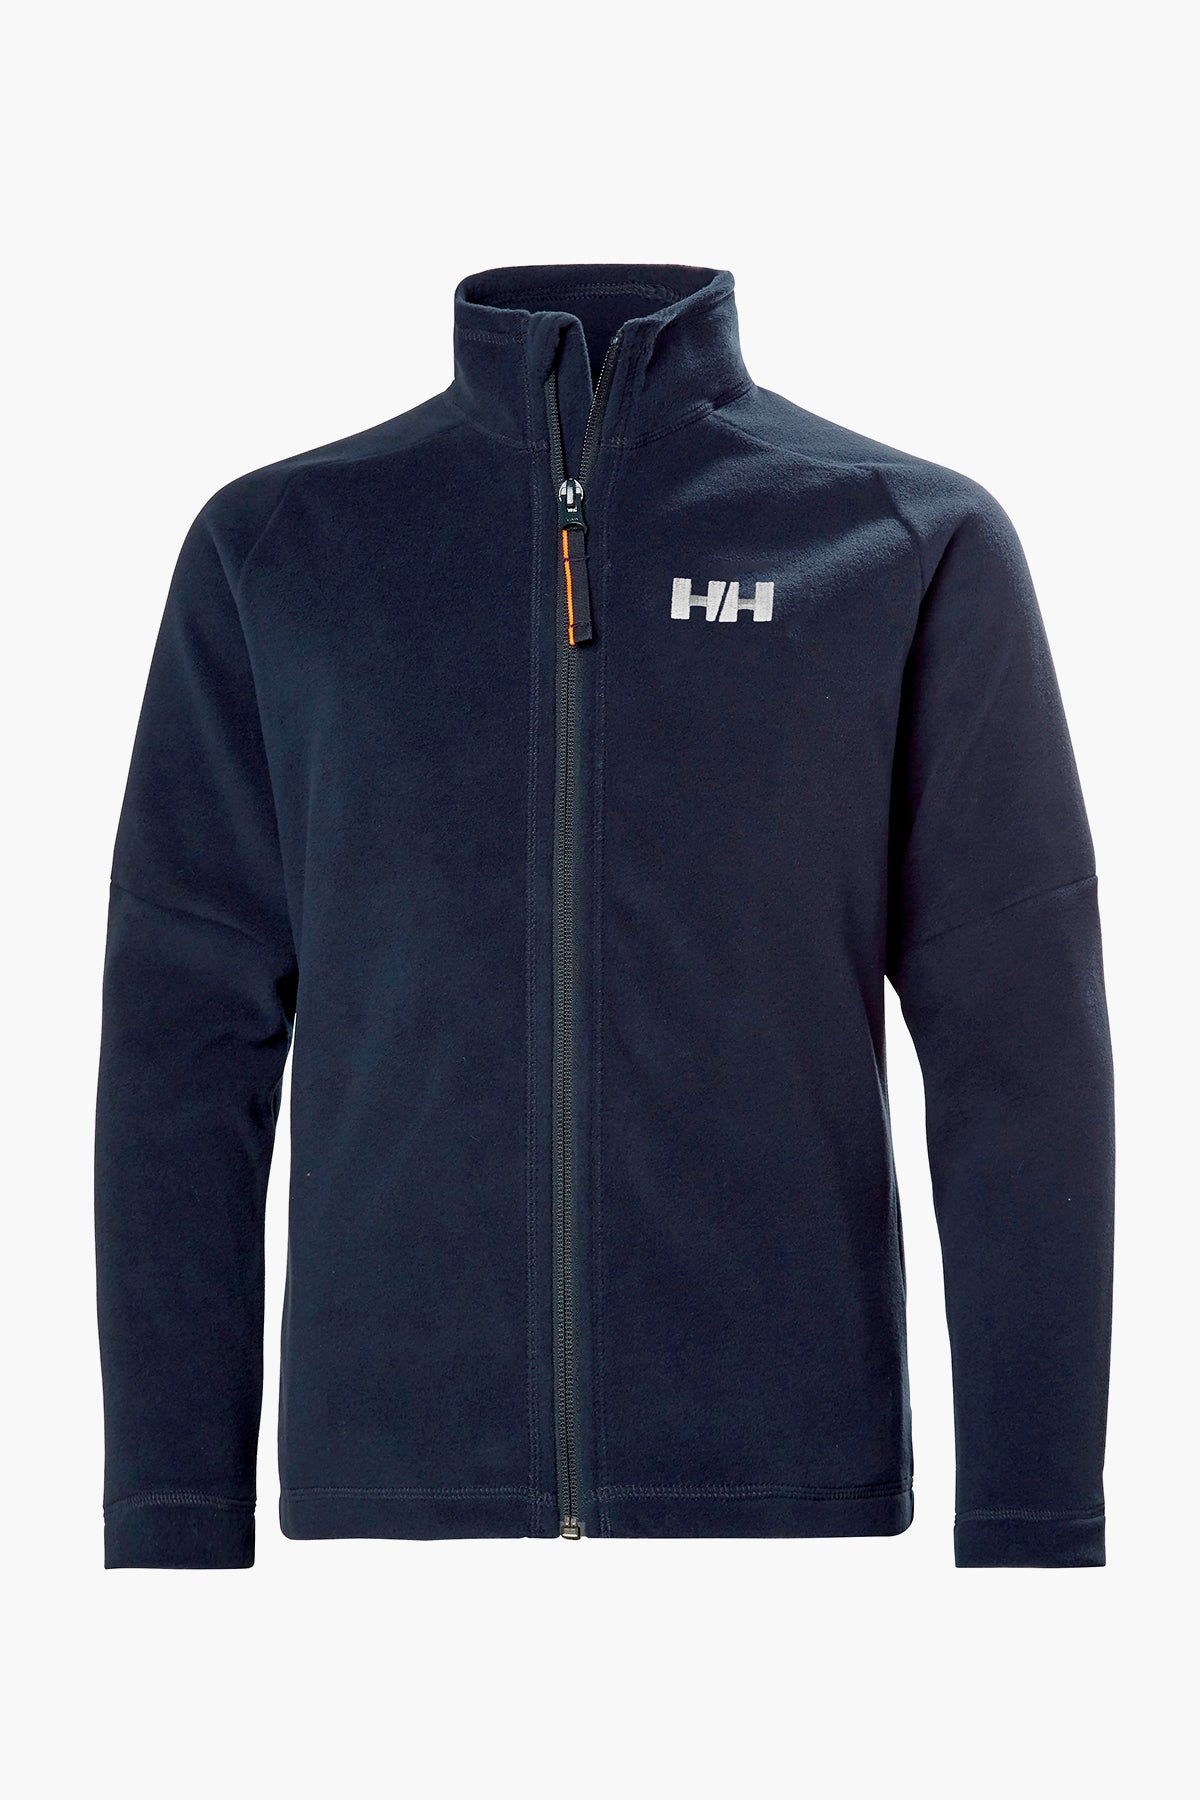 Helly Hansen Kids Fleece Jacket Daybreaker 2.0 - Navy